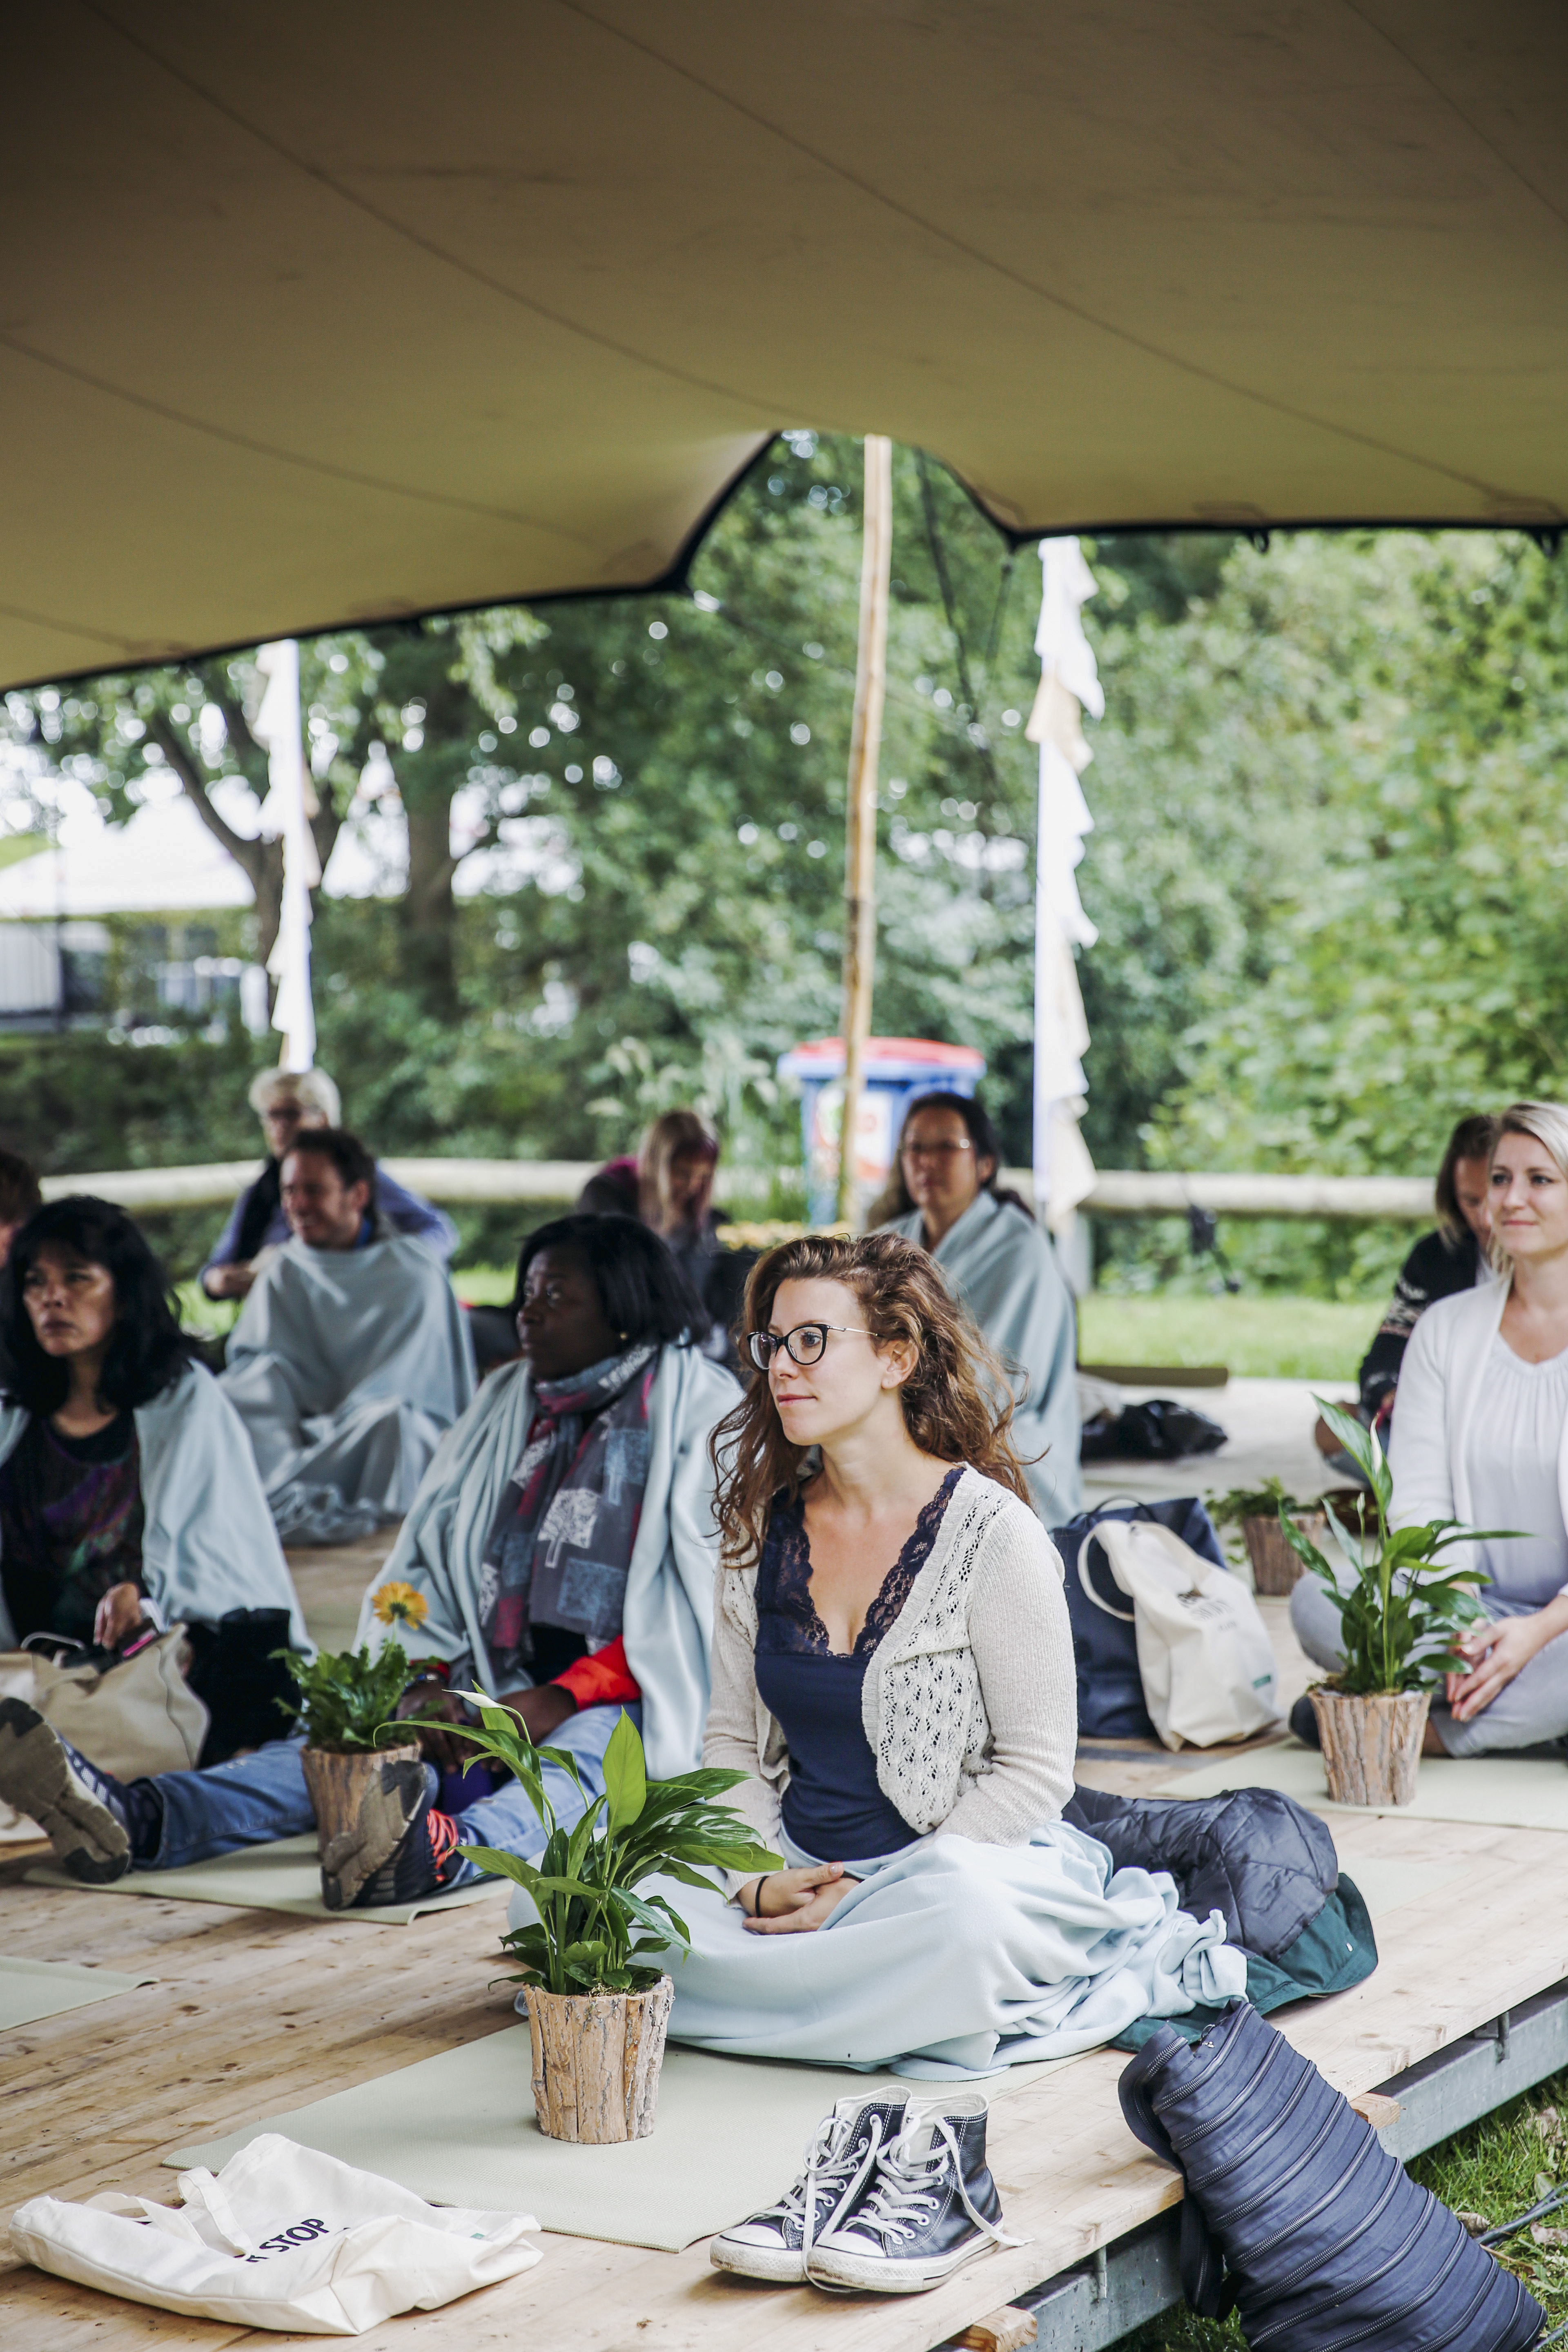 Happinez Festival Plantfullness sessie